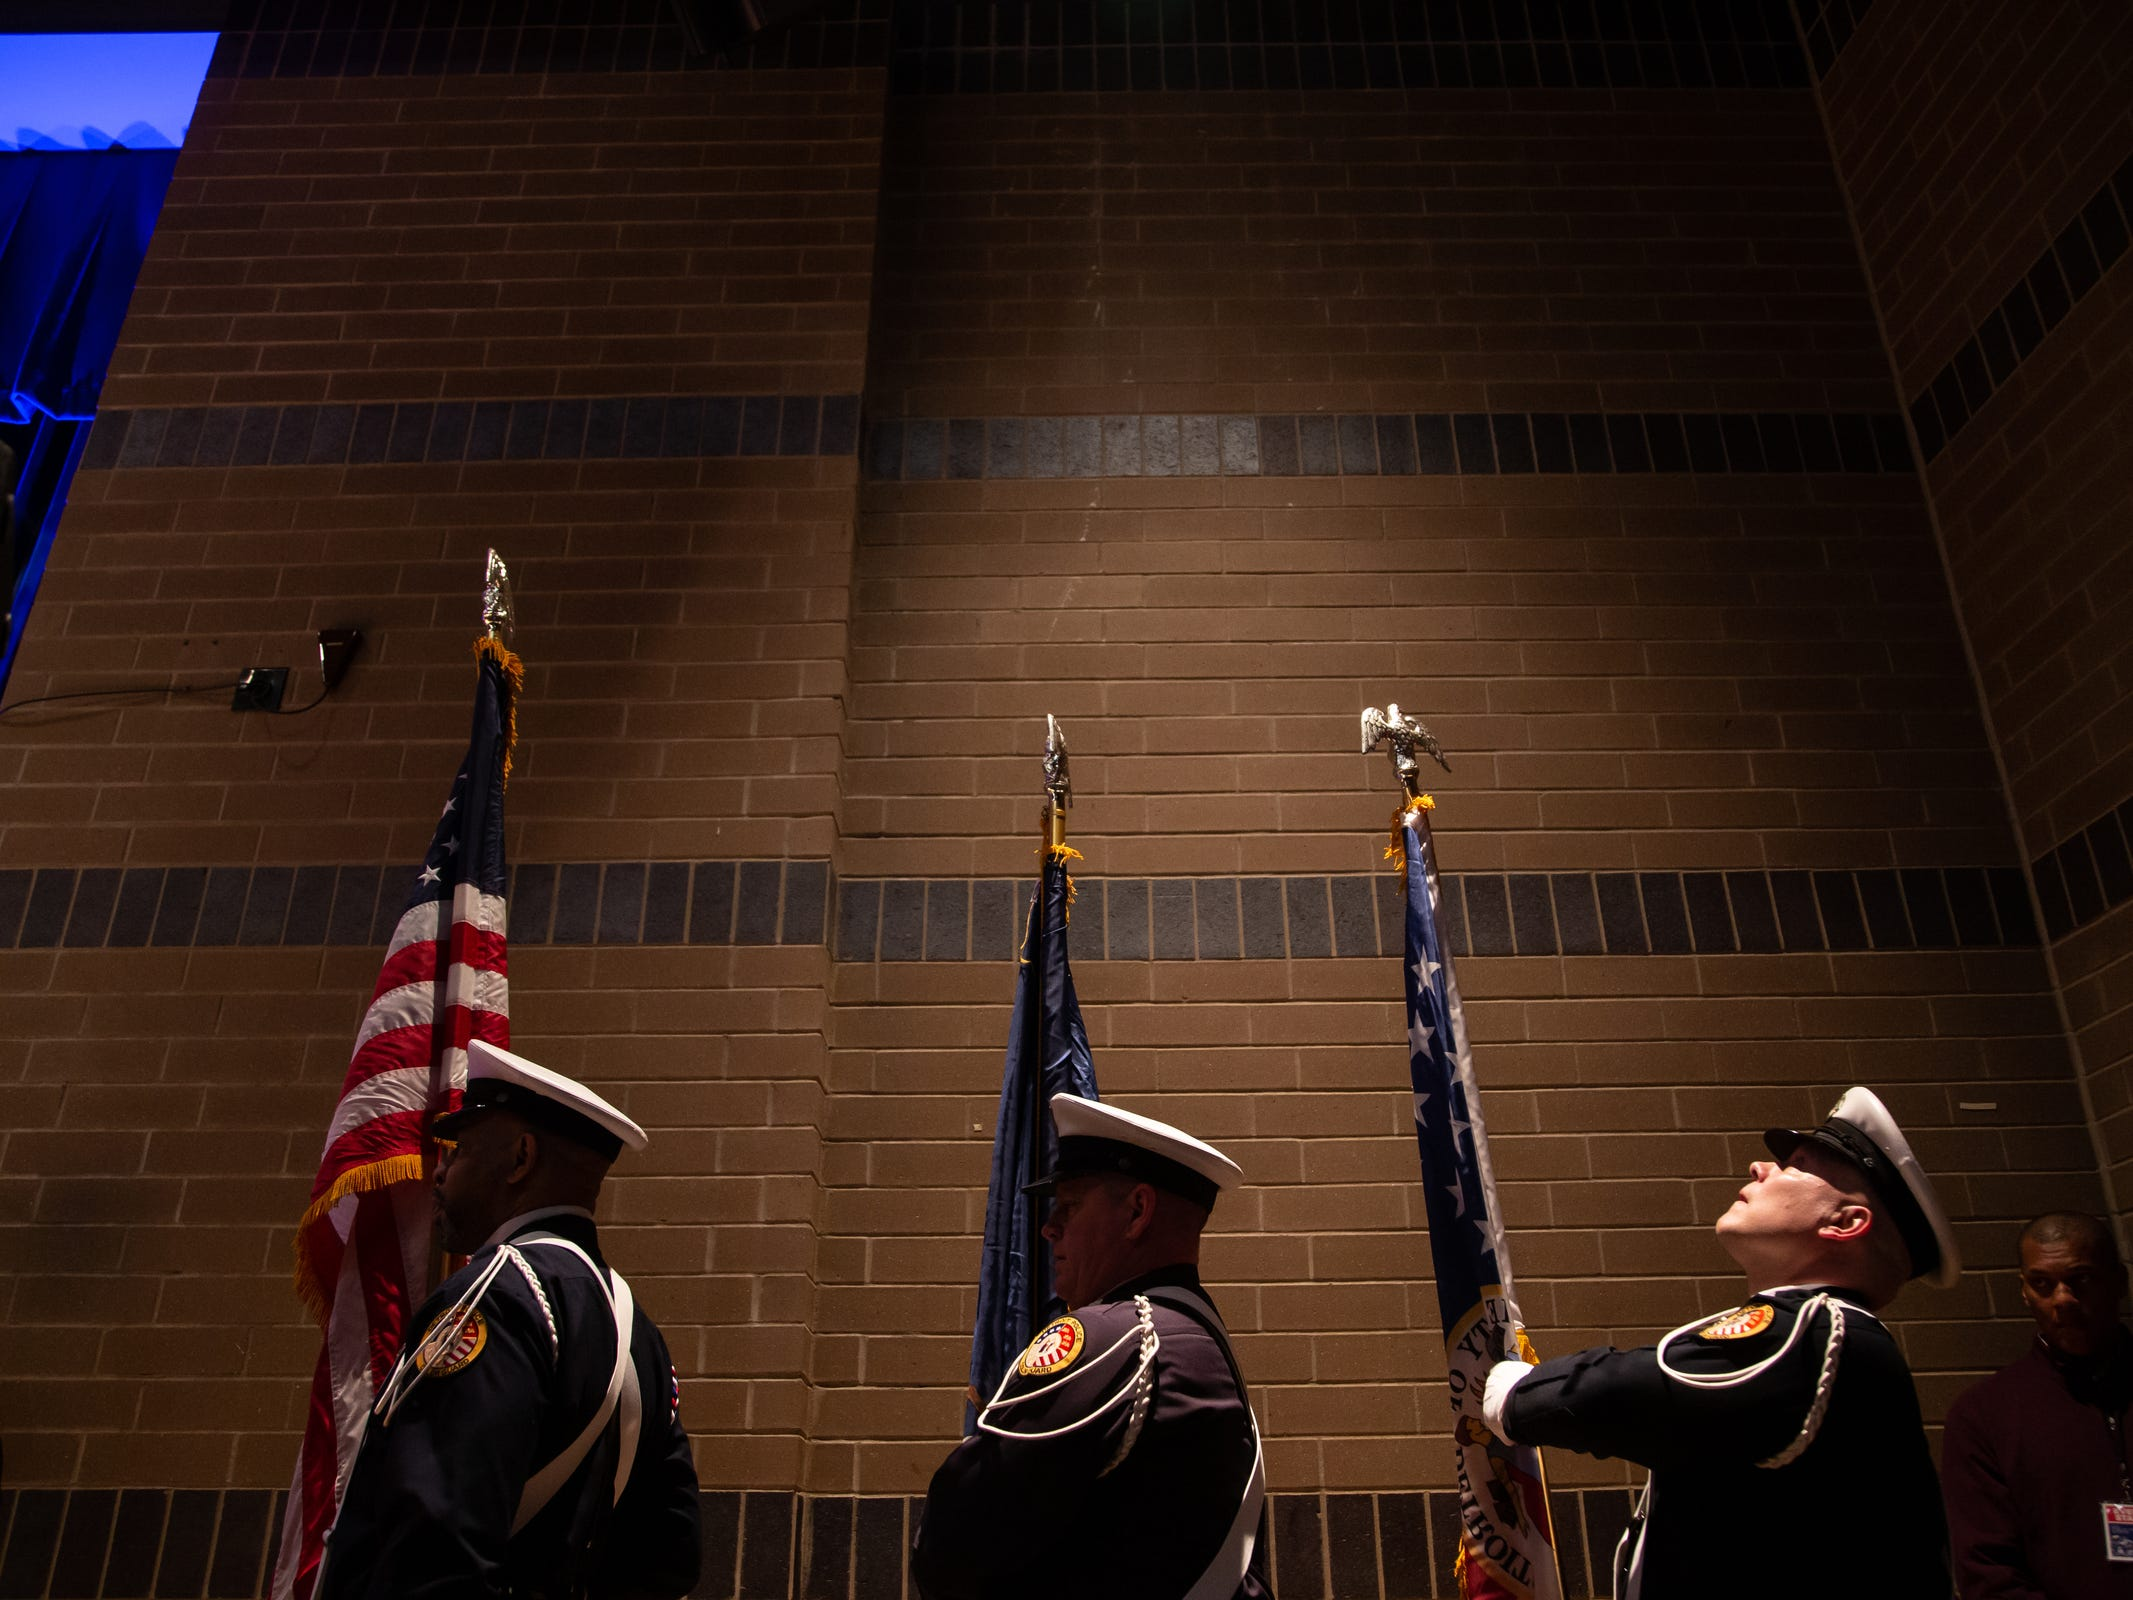 Detroit Police Color Guard members prepare to present the colors before Detroit Mayor Mike Duggan's speech during the 2019 State of the City Address on Tuesday, March 5, 2019 at East English Village Preparatory Academy in Detroit.